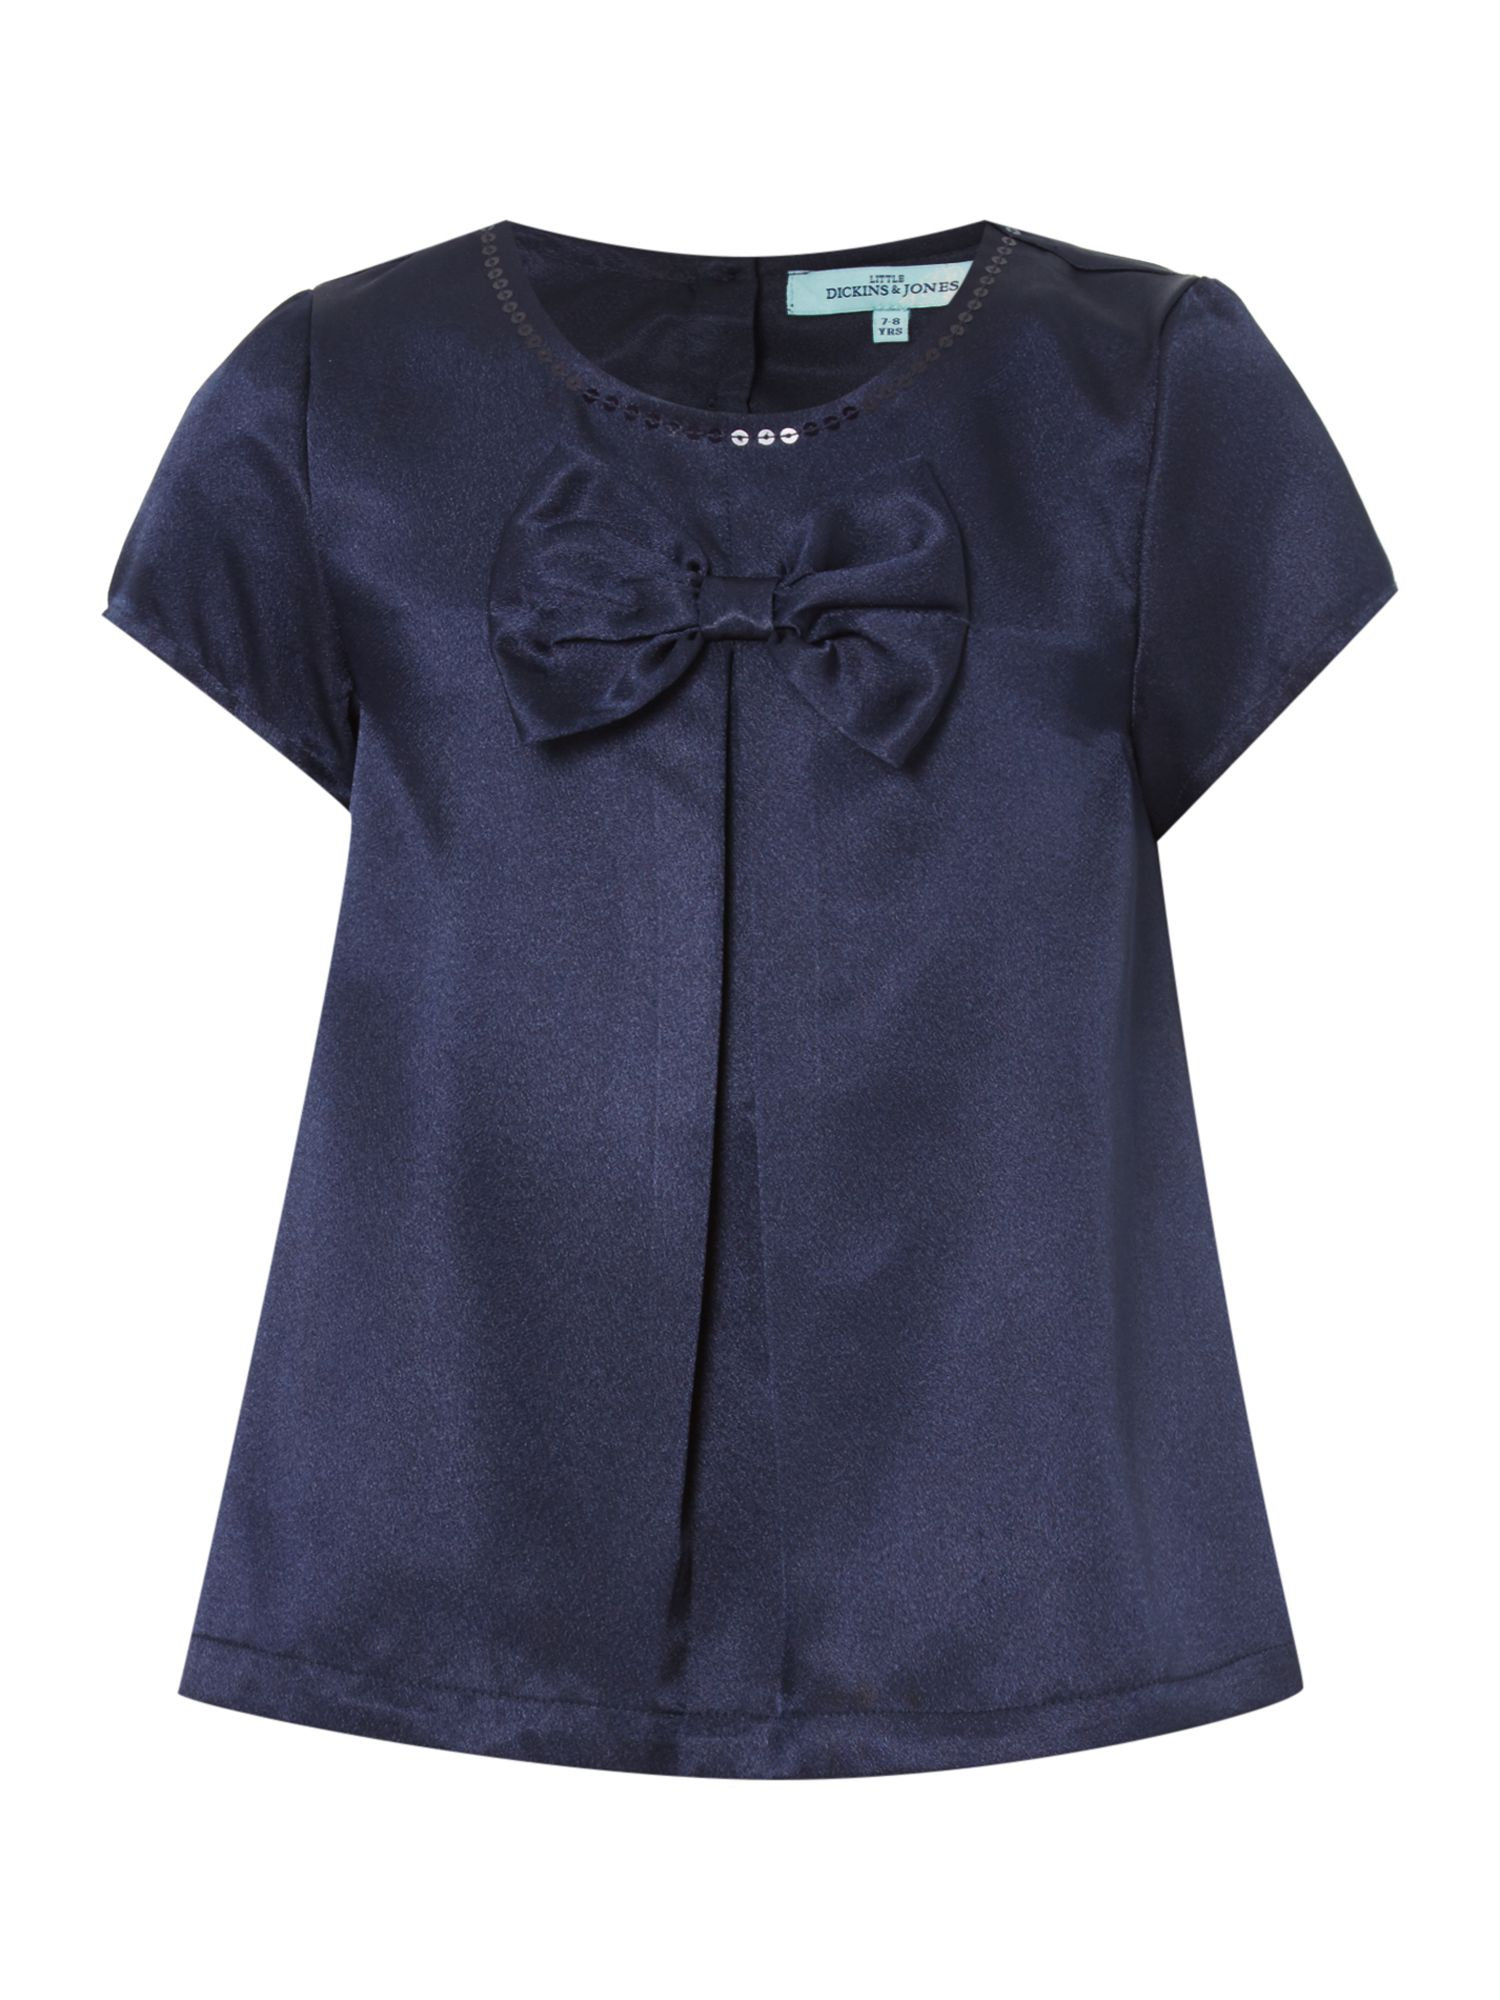 Little Dickins & Jones Little Dickins & Jones Sleeveless Shirt Large Bow on Front, Navy